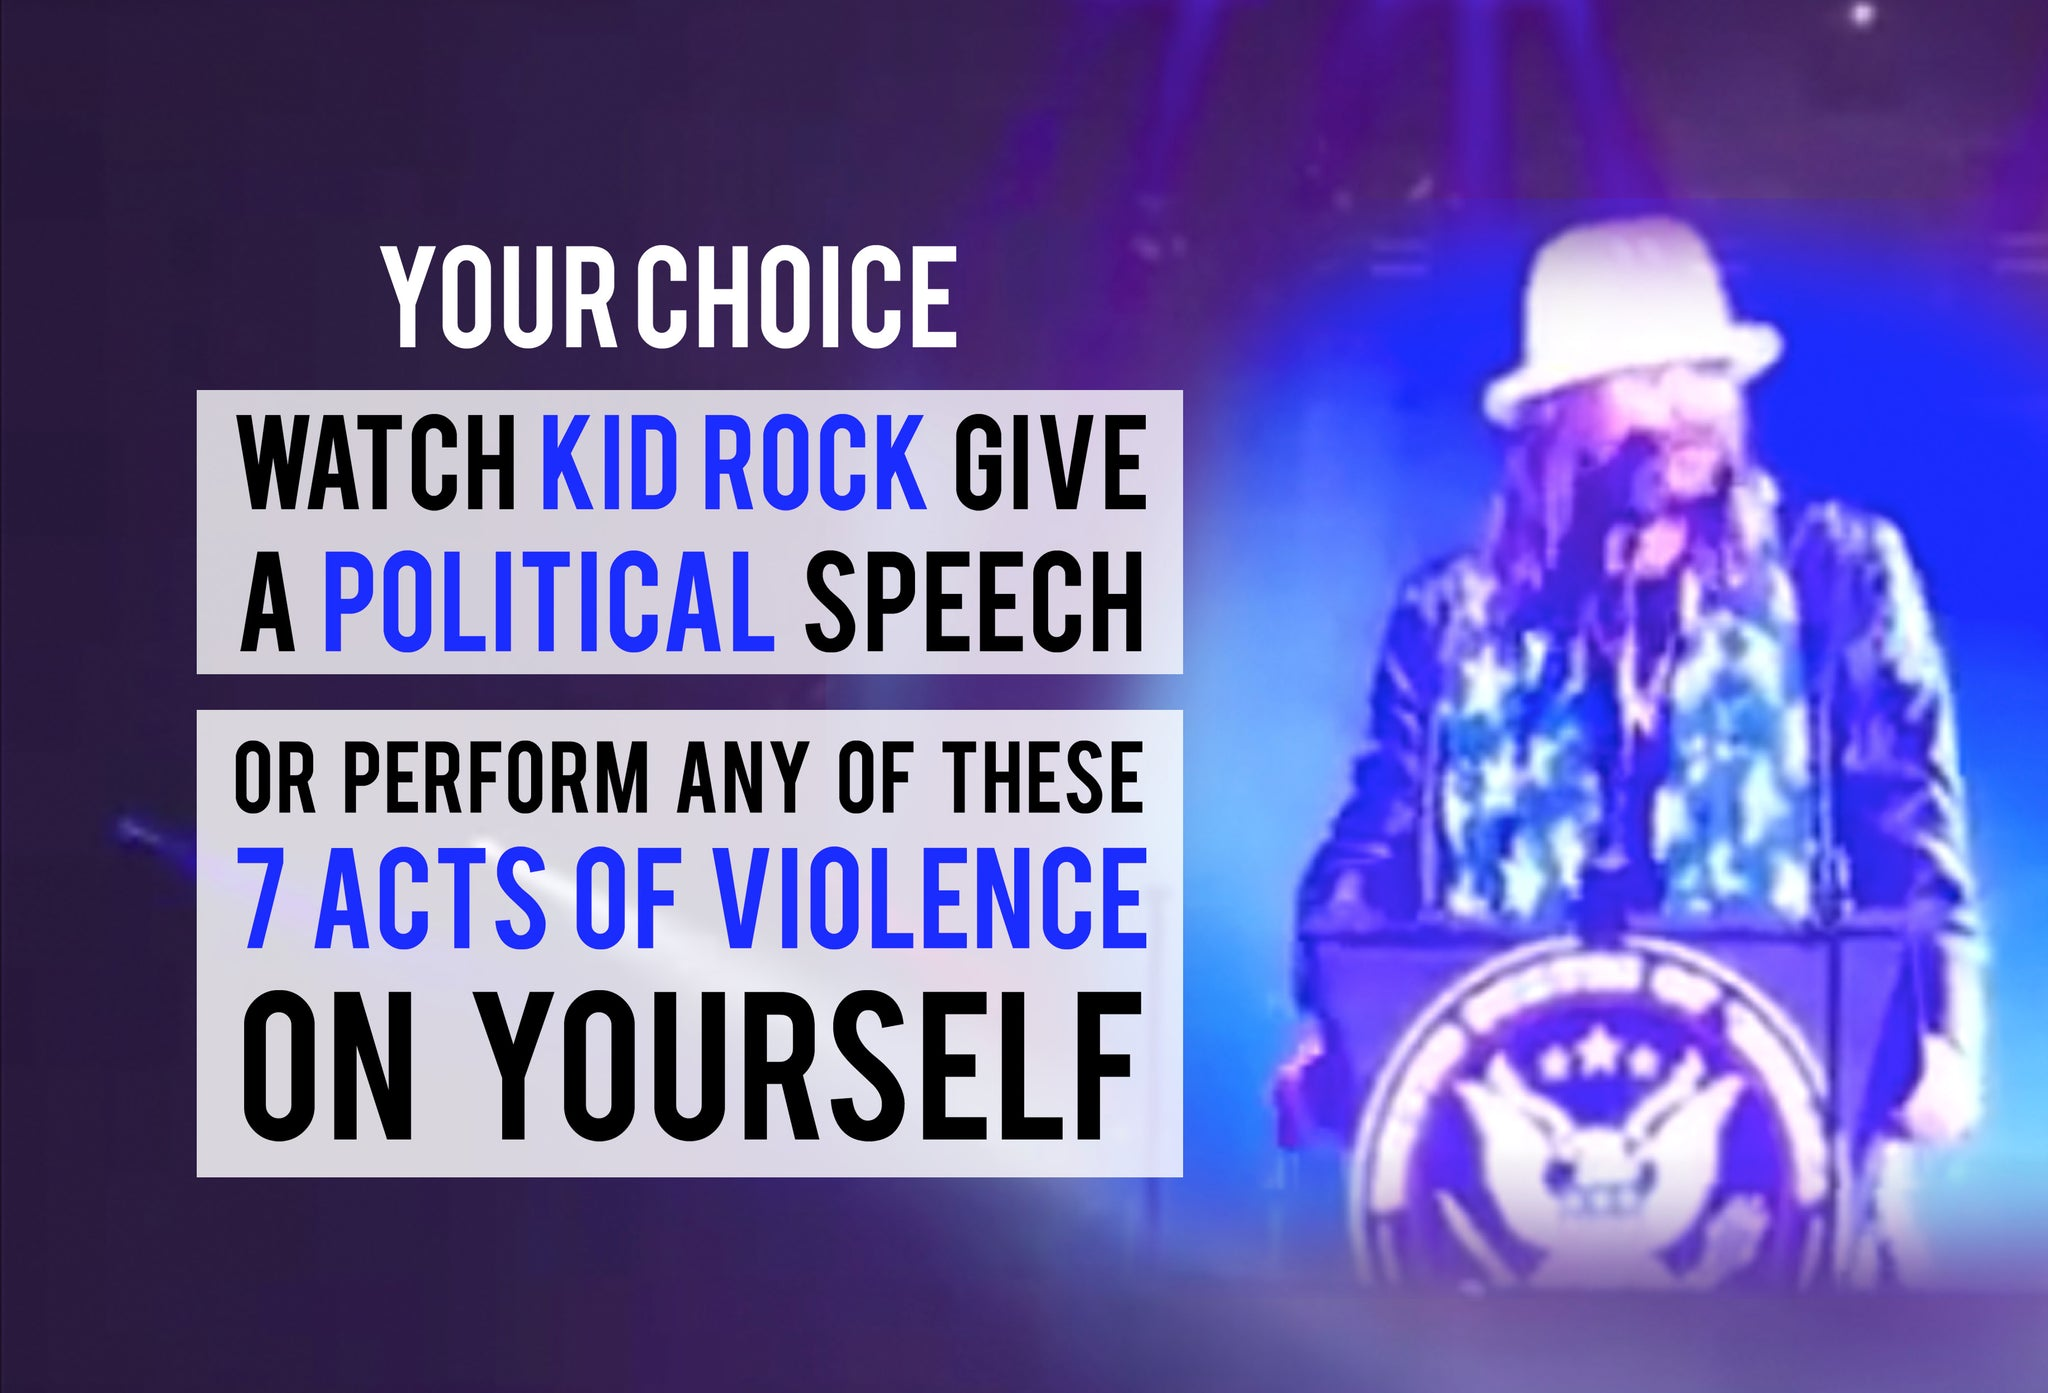 Kid Rock gives a political speech